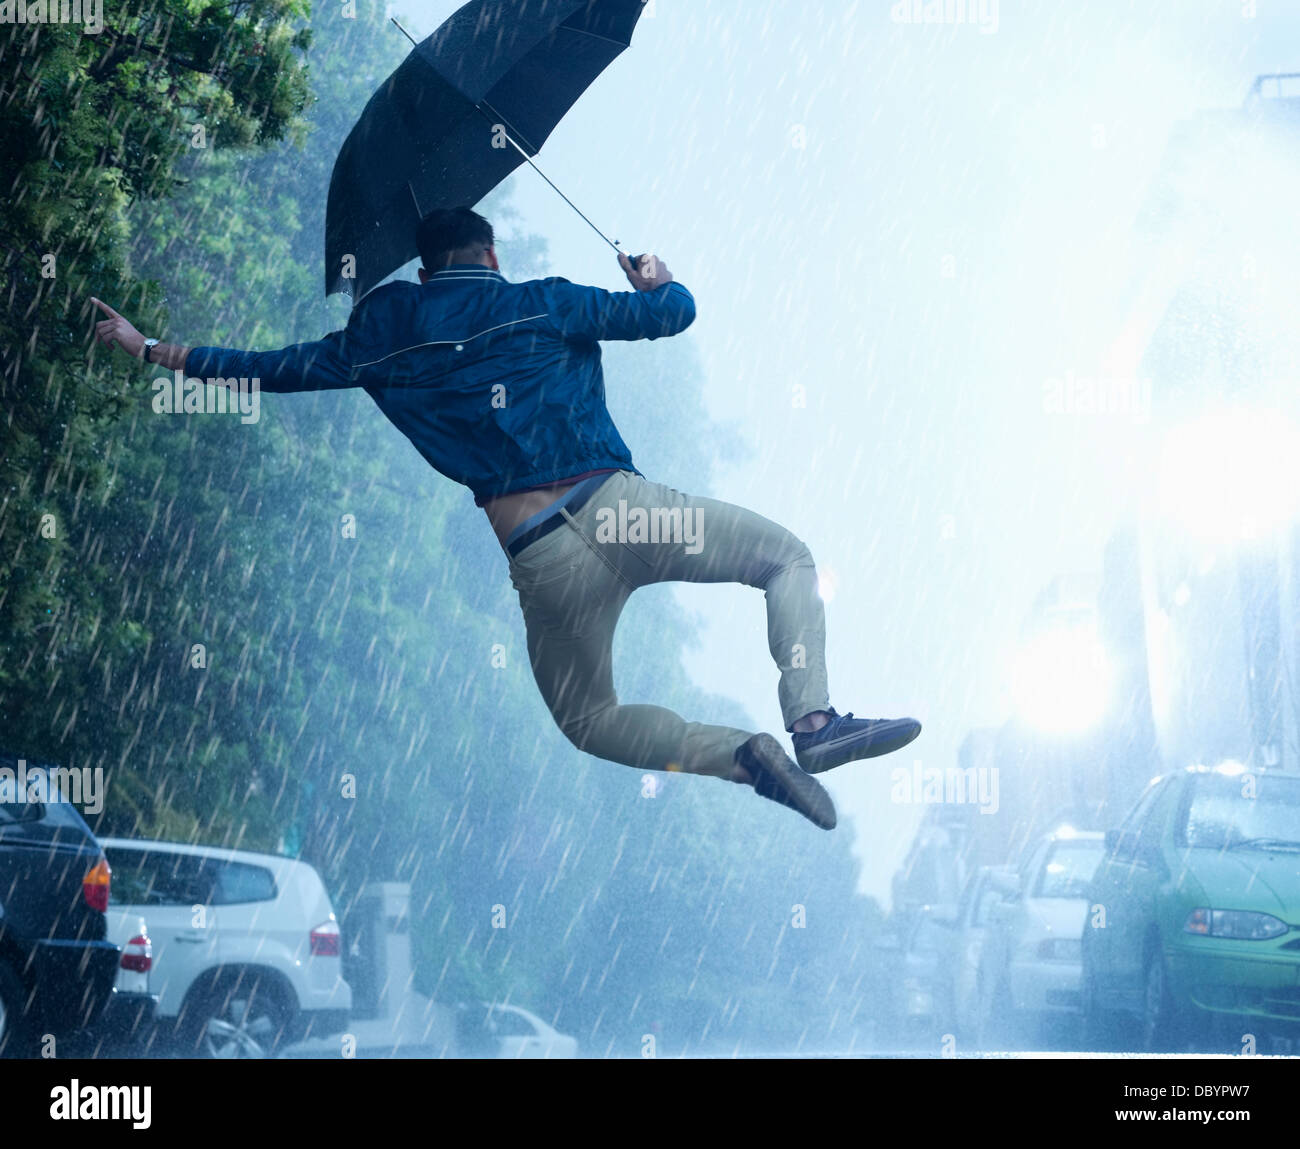 Man with umbrella jumping in rain - Stock Image